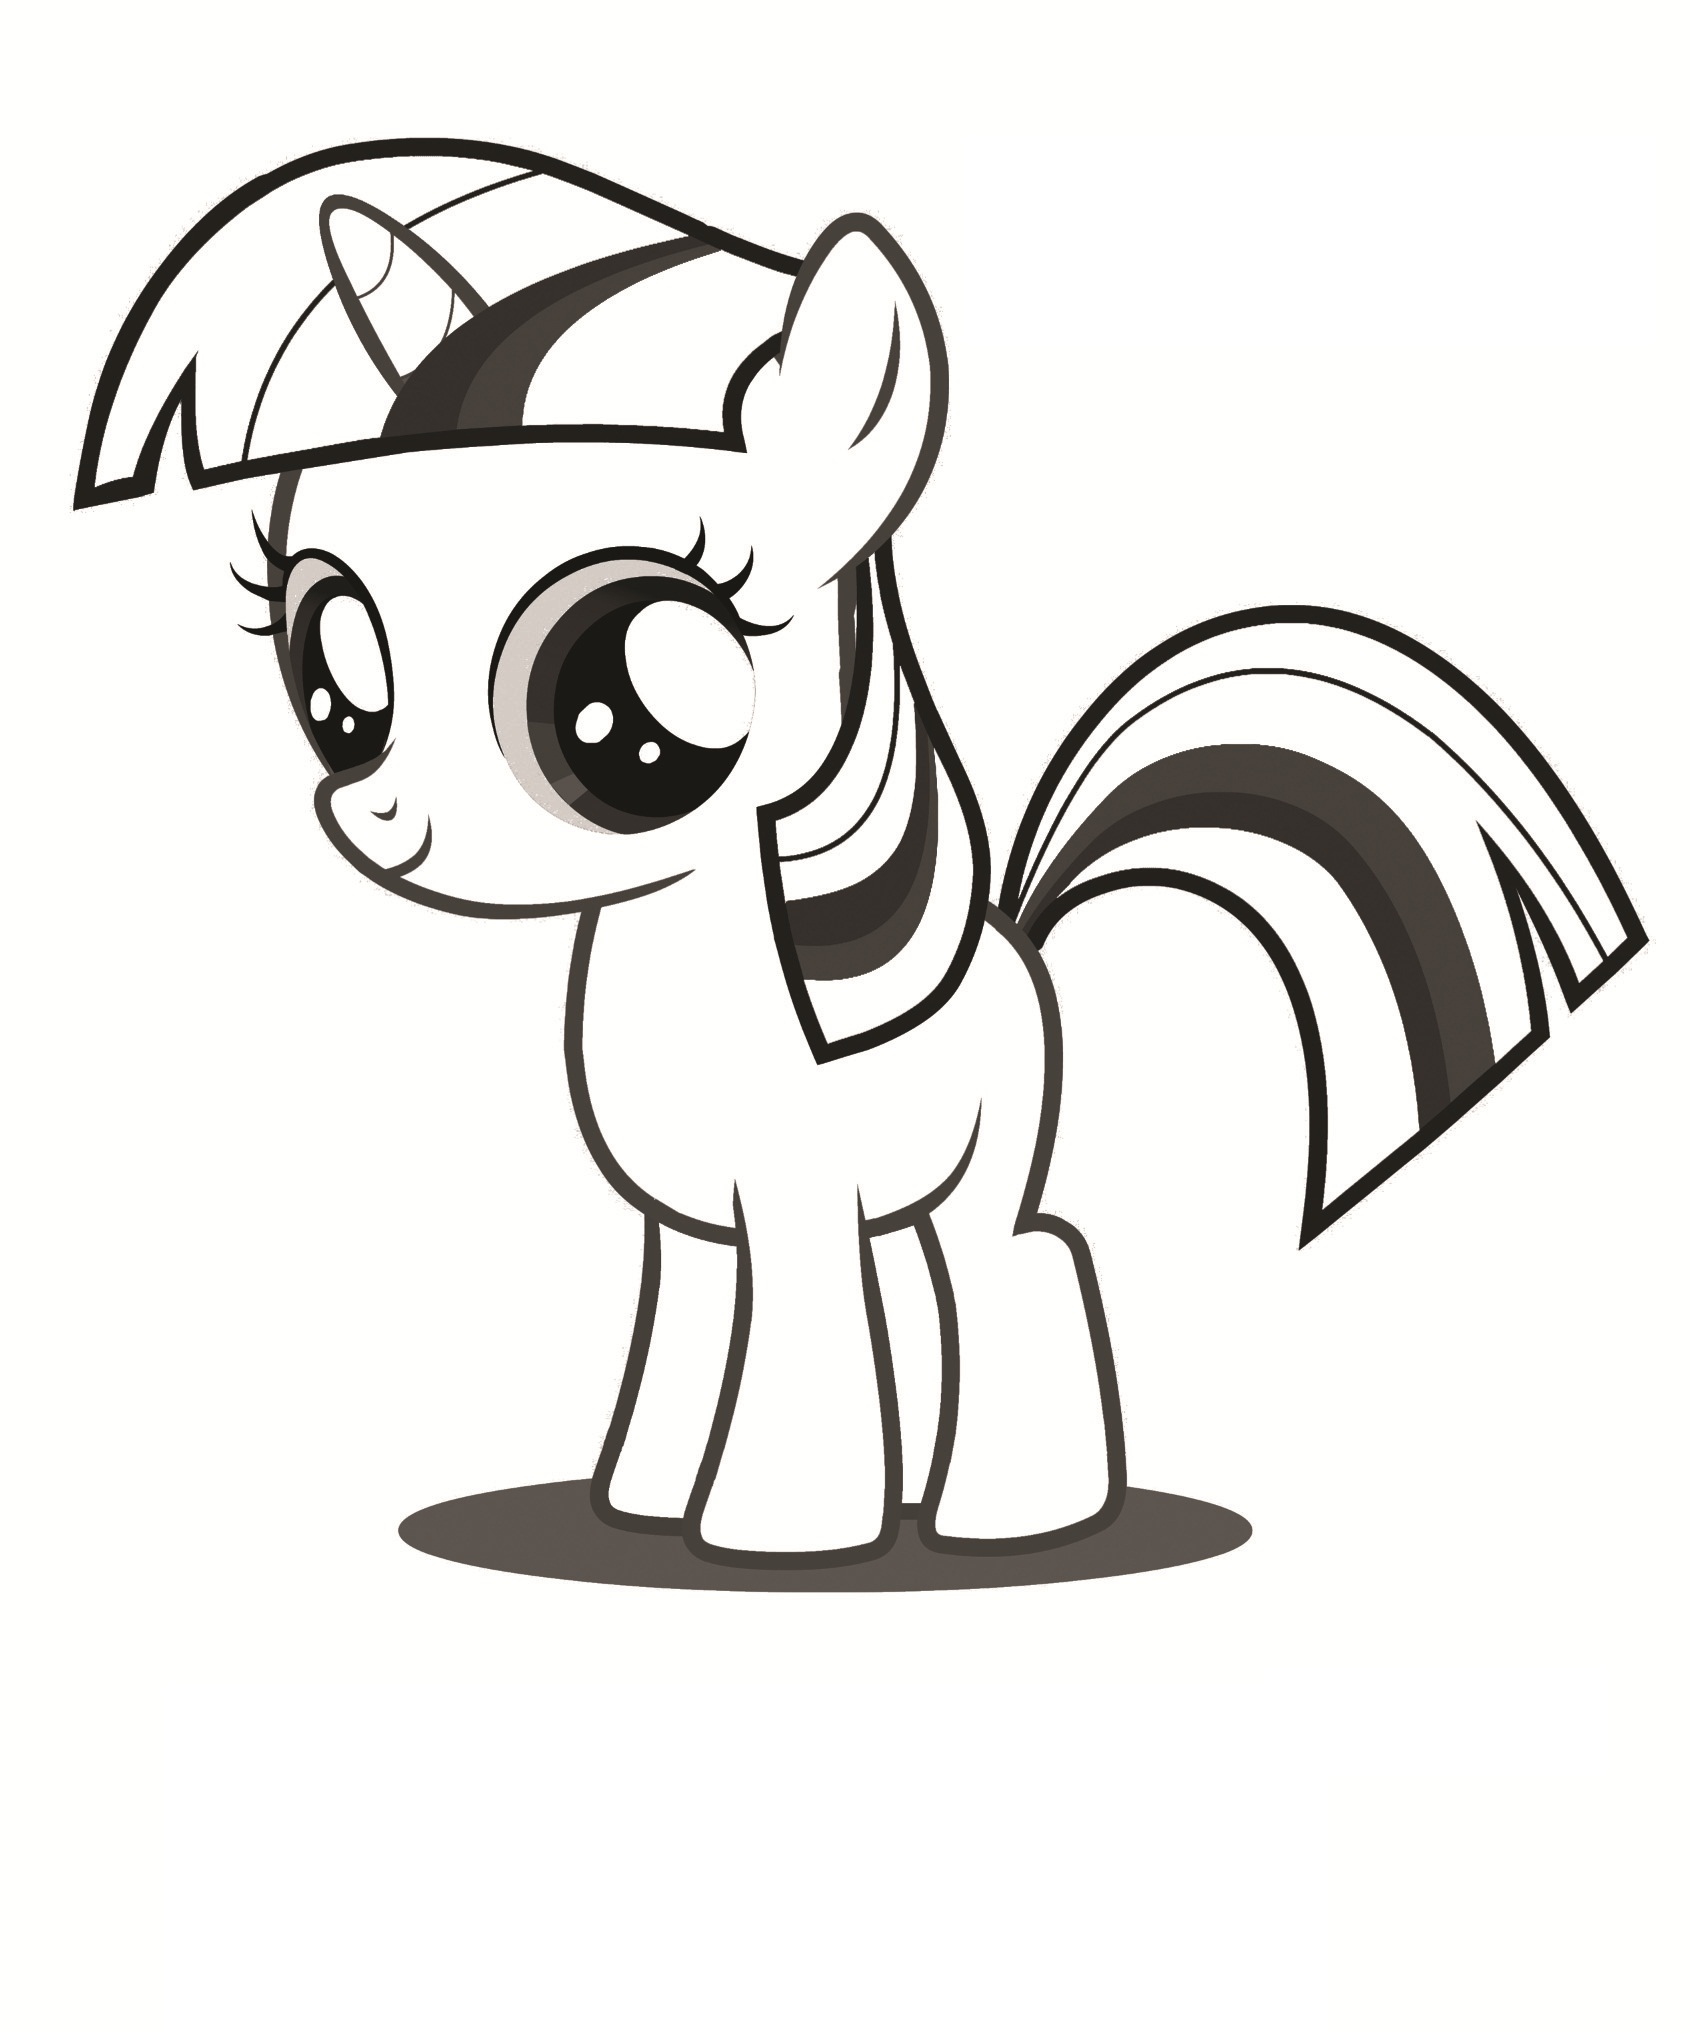 Free coloring in pages - My Little Pony Free Coloring Pages